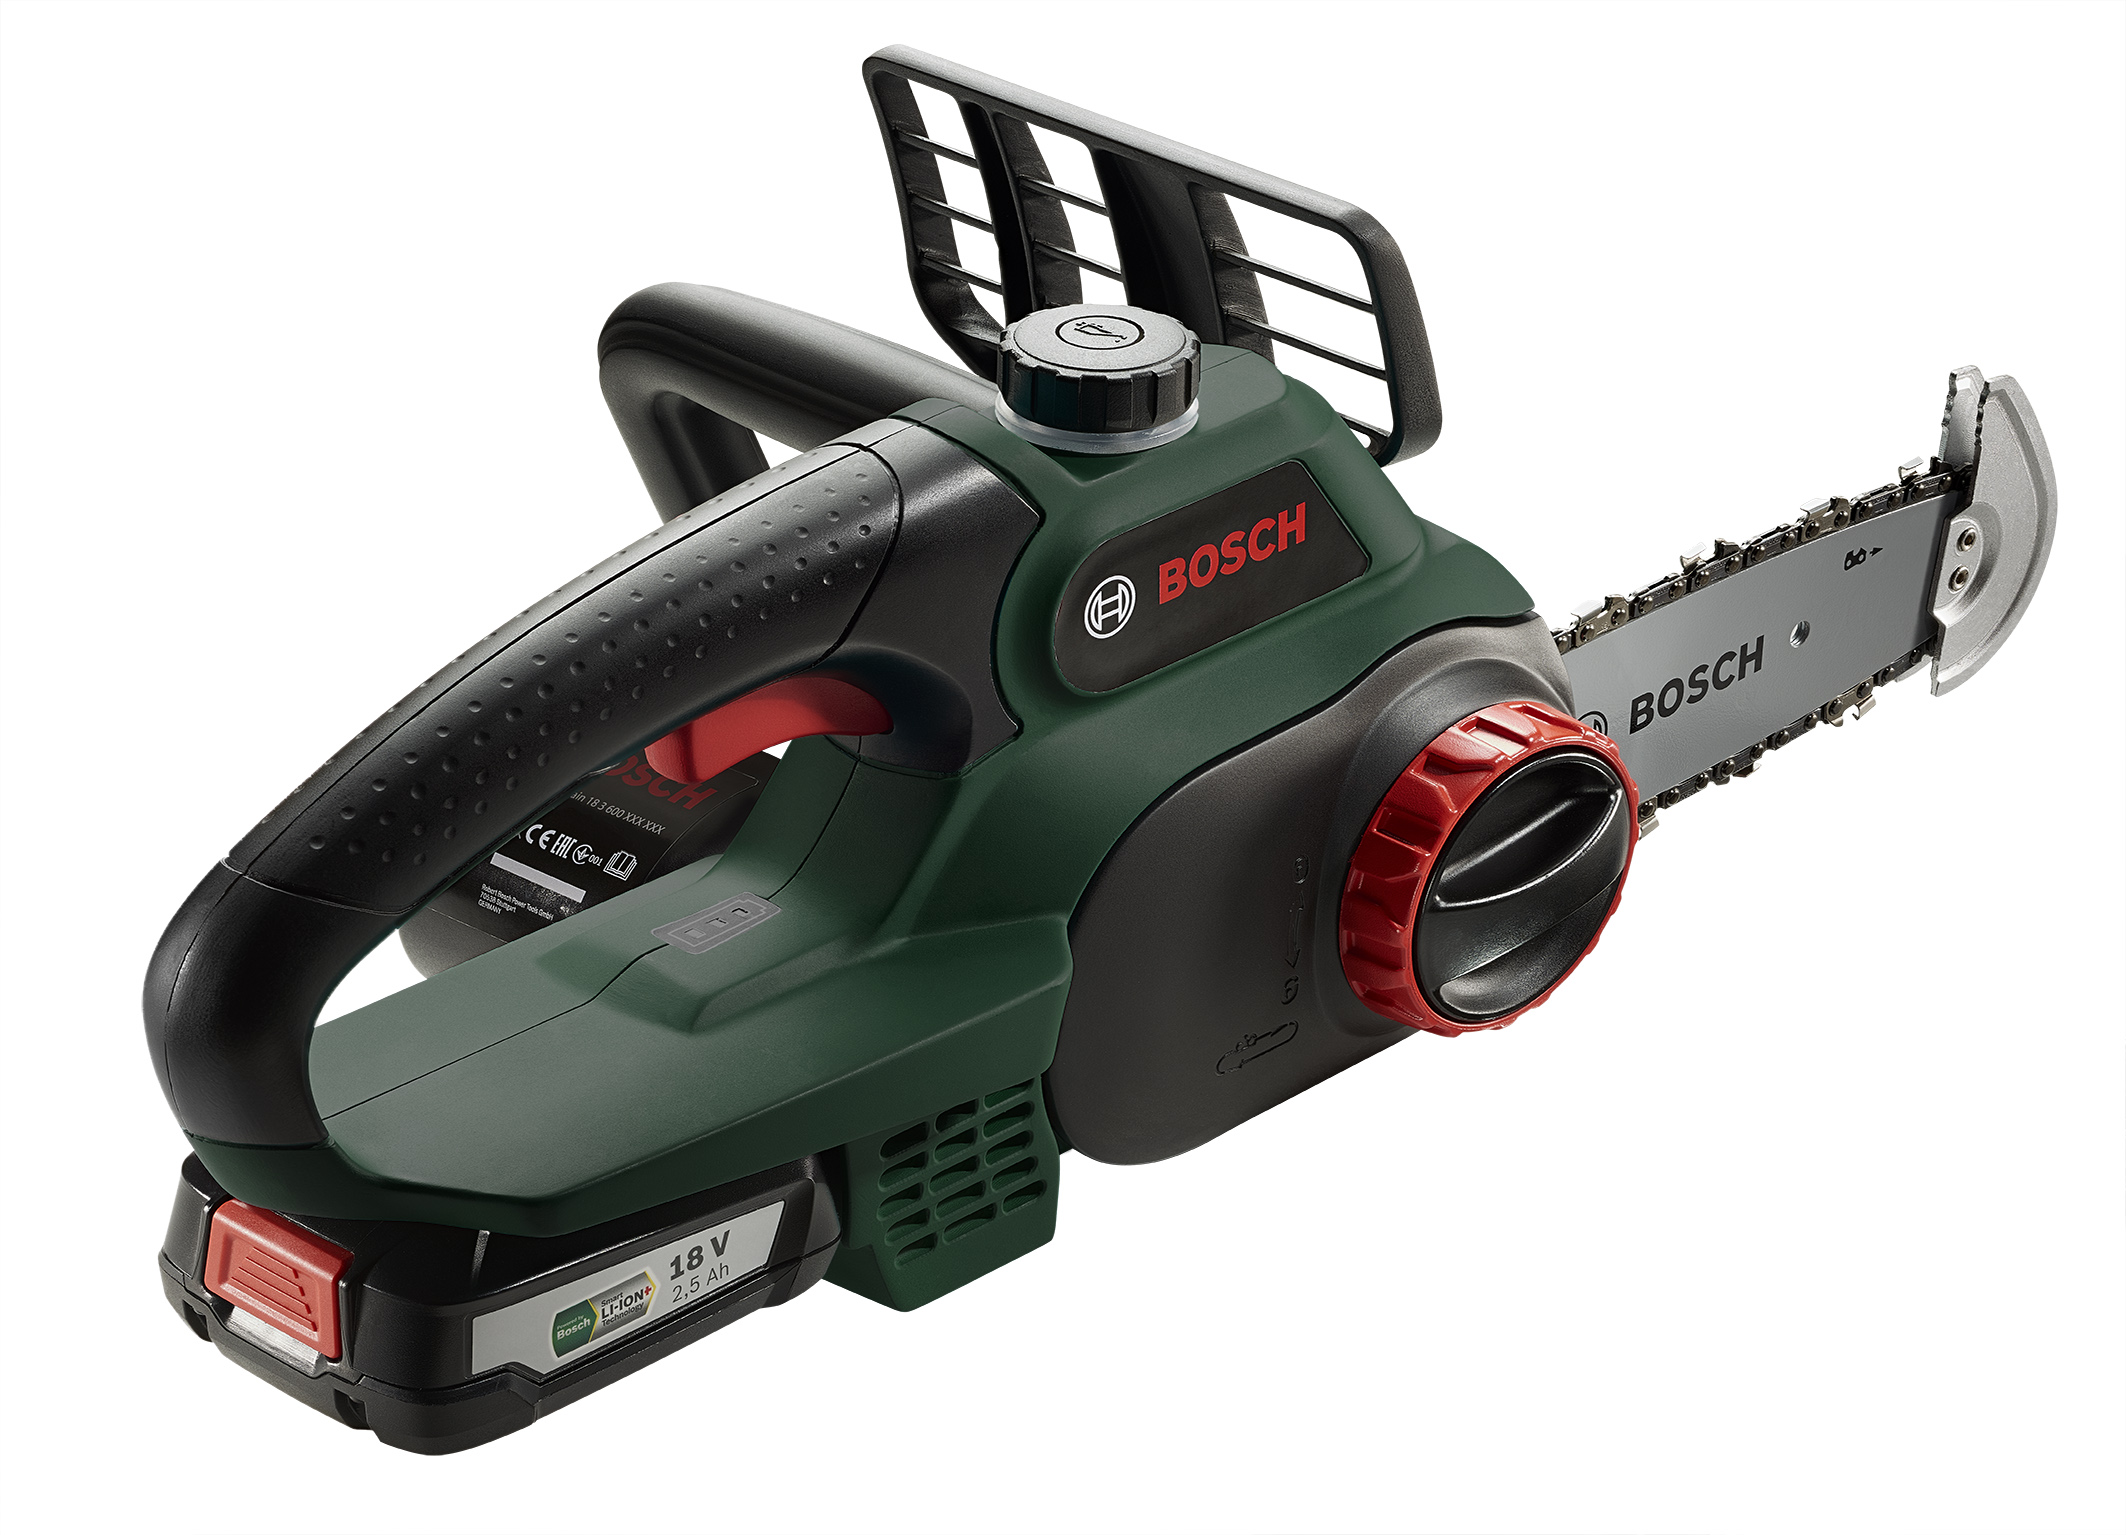 Best power-to-weight ratio in its class: Convenient 18 volt chainsaw from Bosch